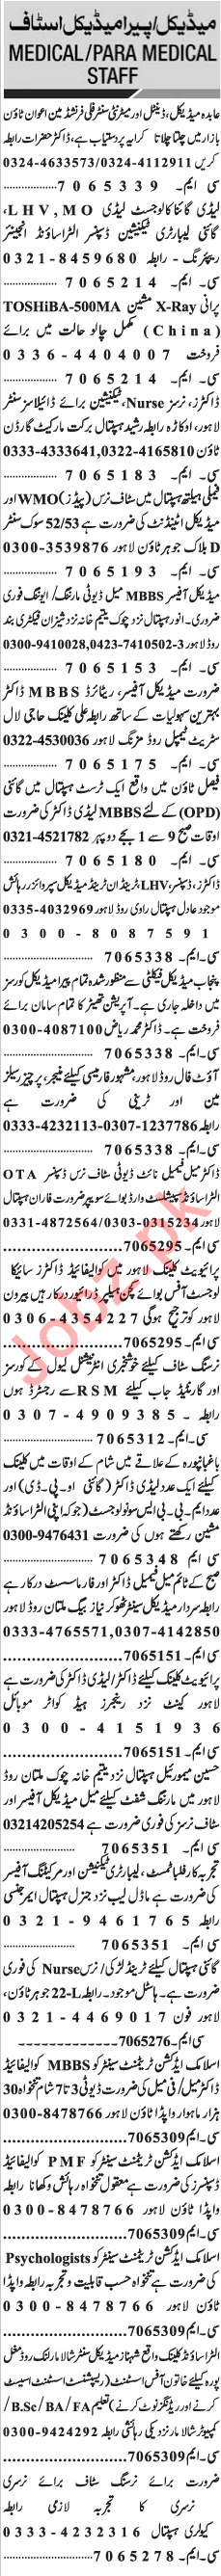 Jang Sunday Classified Ads 28th April 2019 Paramedical Staff